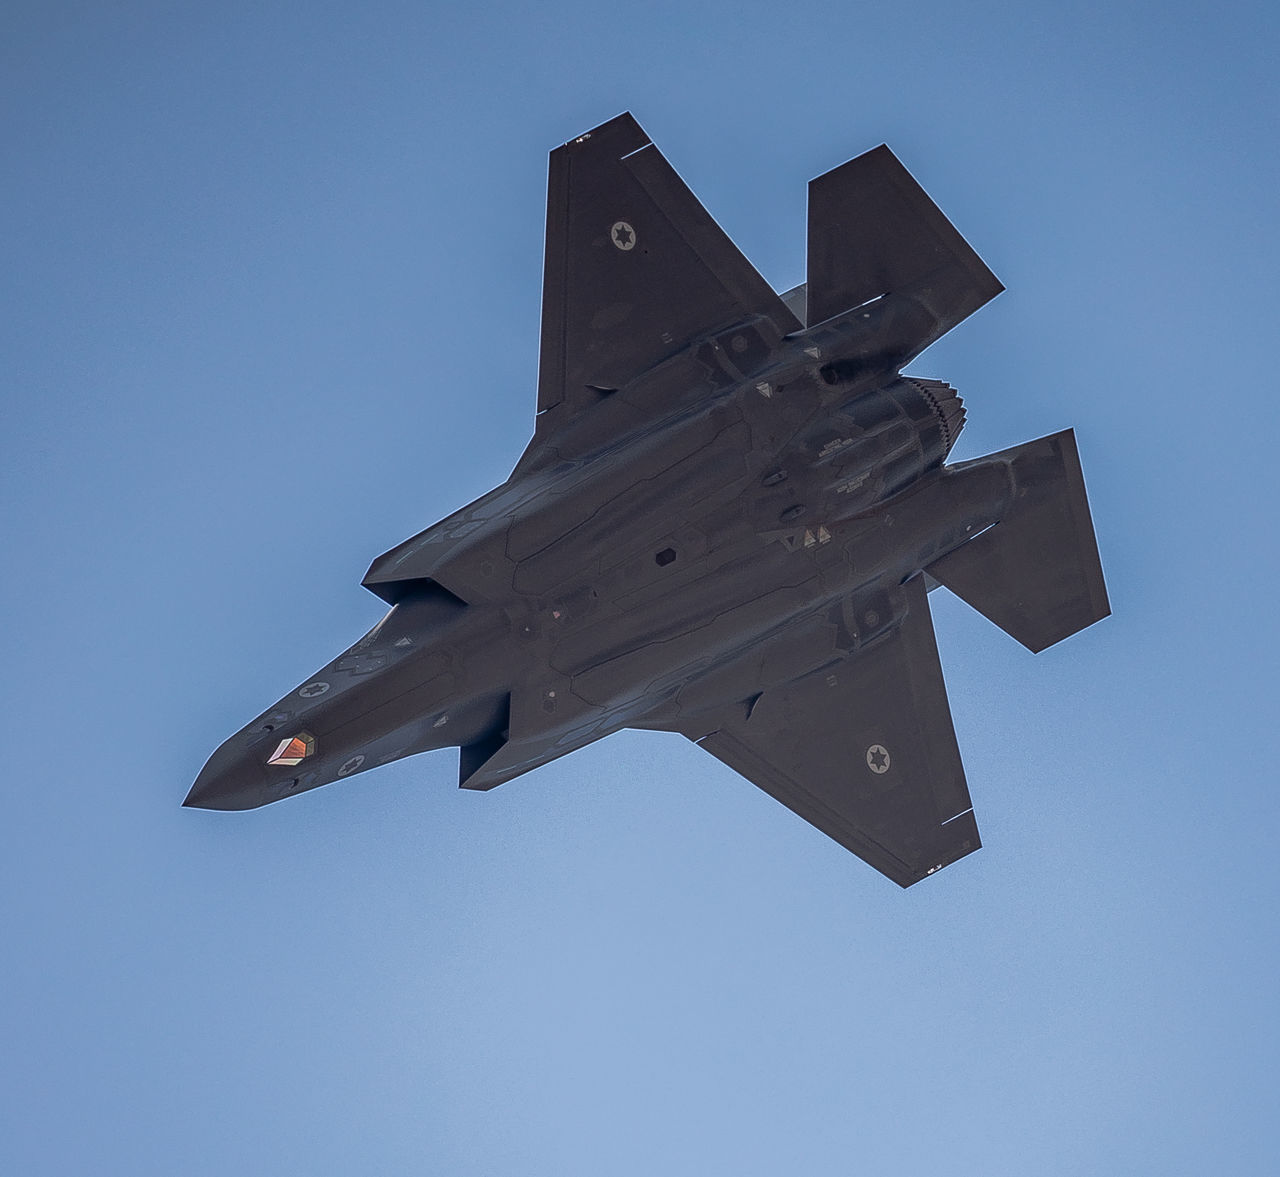 F-35I Adir Adult Air Force Air Vehicle Airplane Airshow Aviation Aviationphotography Blue Clear Sky Day F-35 A F-35 Lightning II F-35I Fighter Plane Flying IAF Israeli Air Force Lockheed Martin F-35 Low Angle View Mid-air Military Motion No People Outdoors Sky